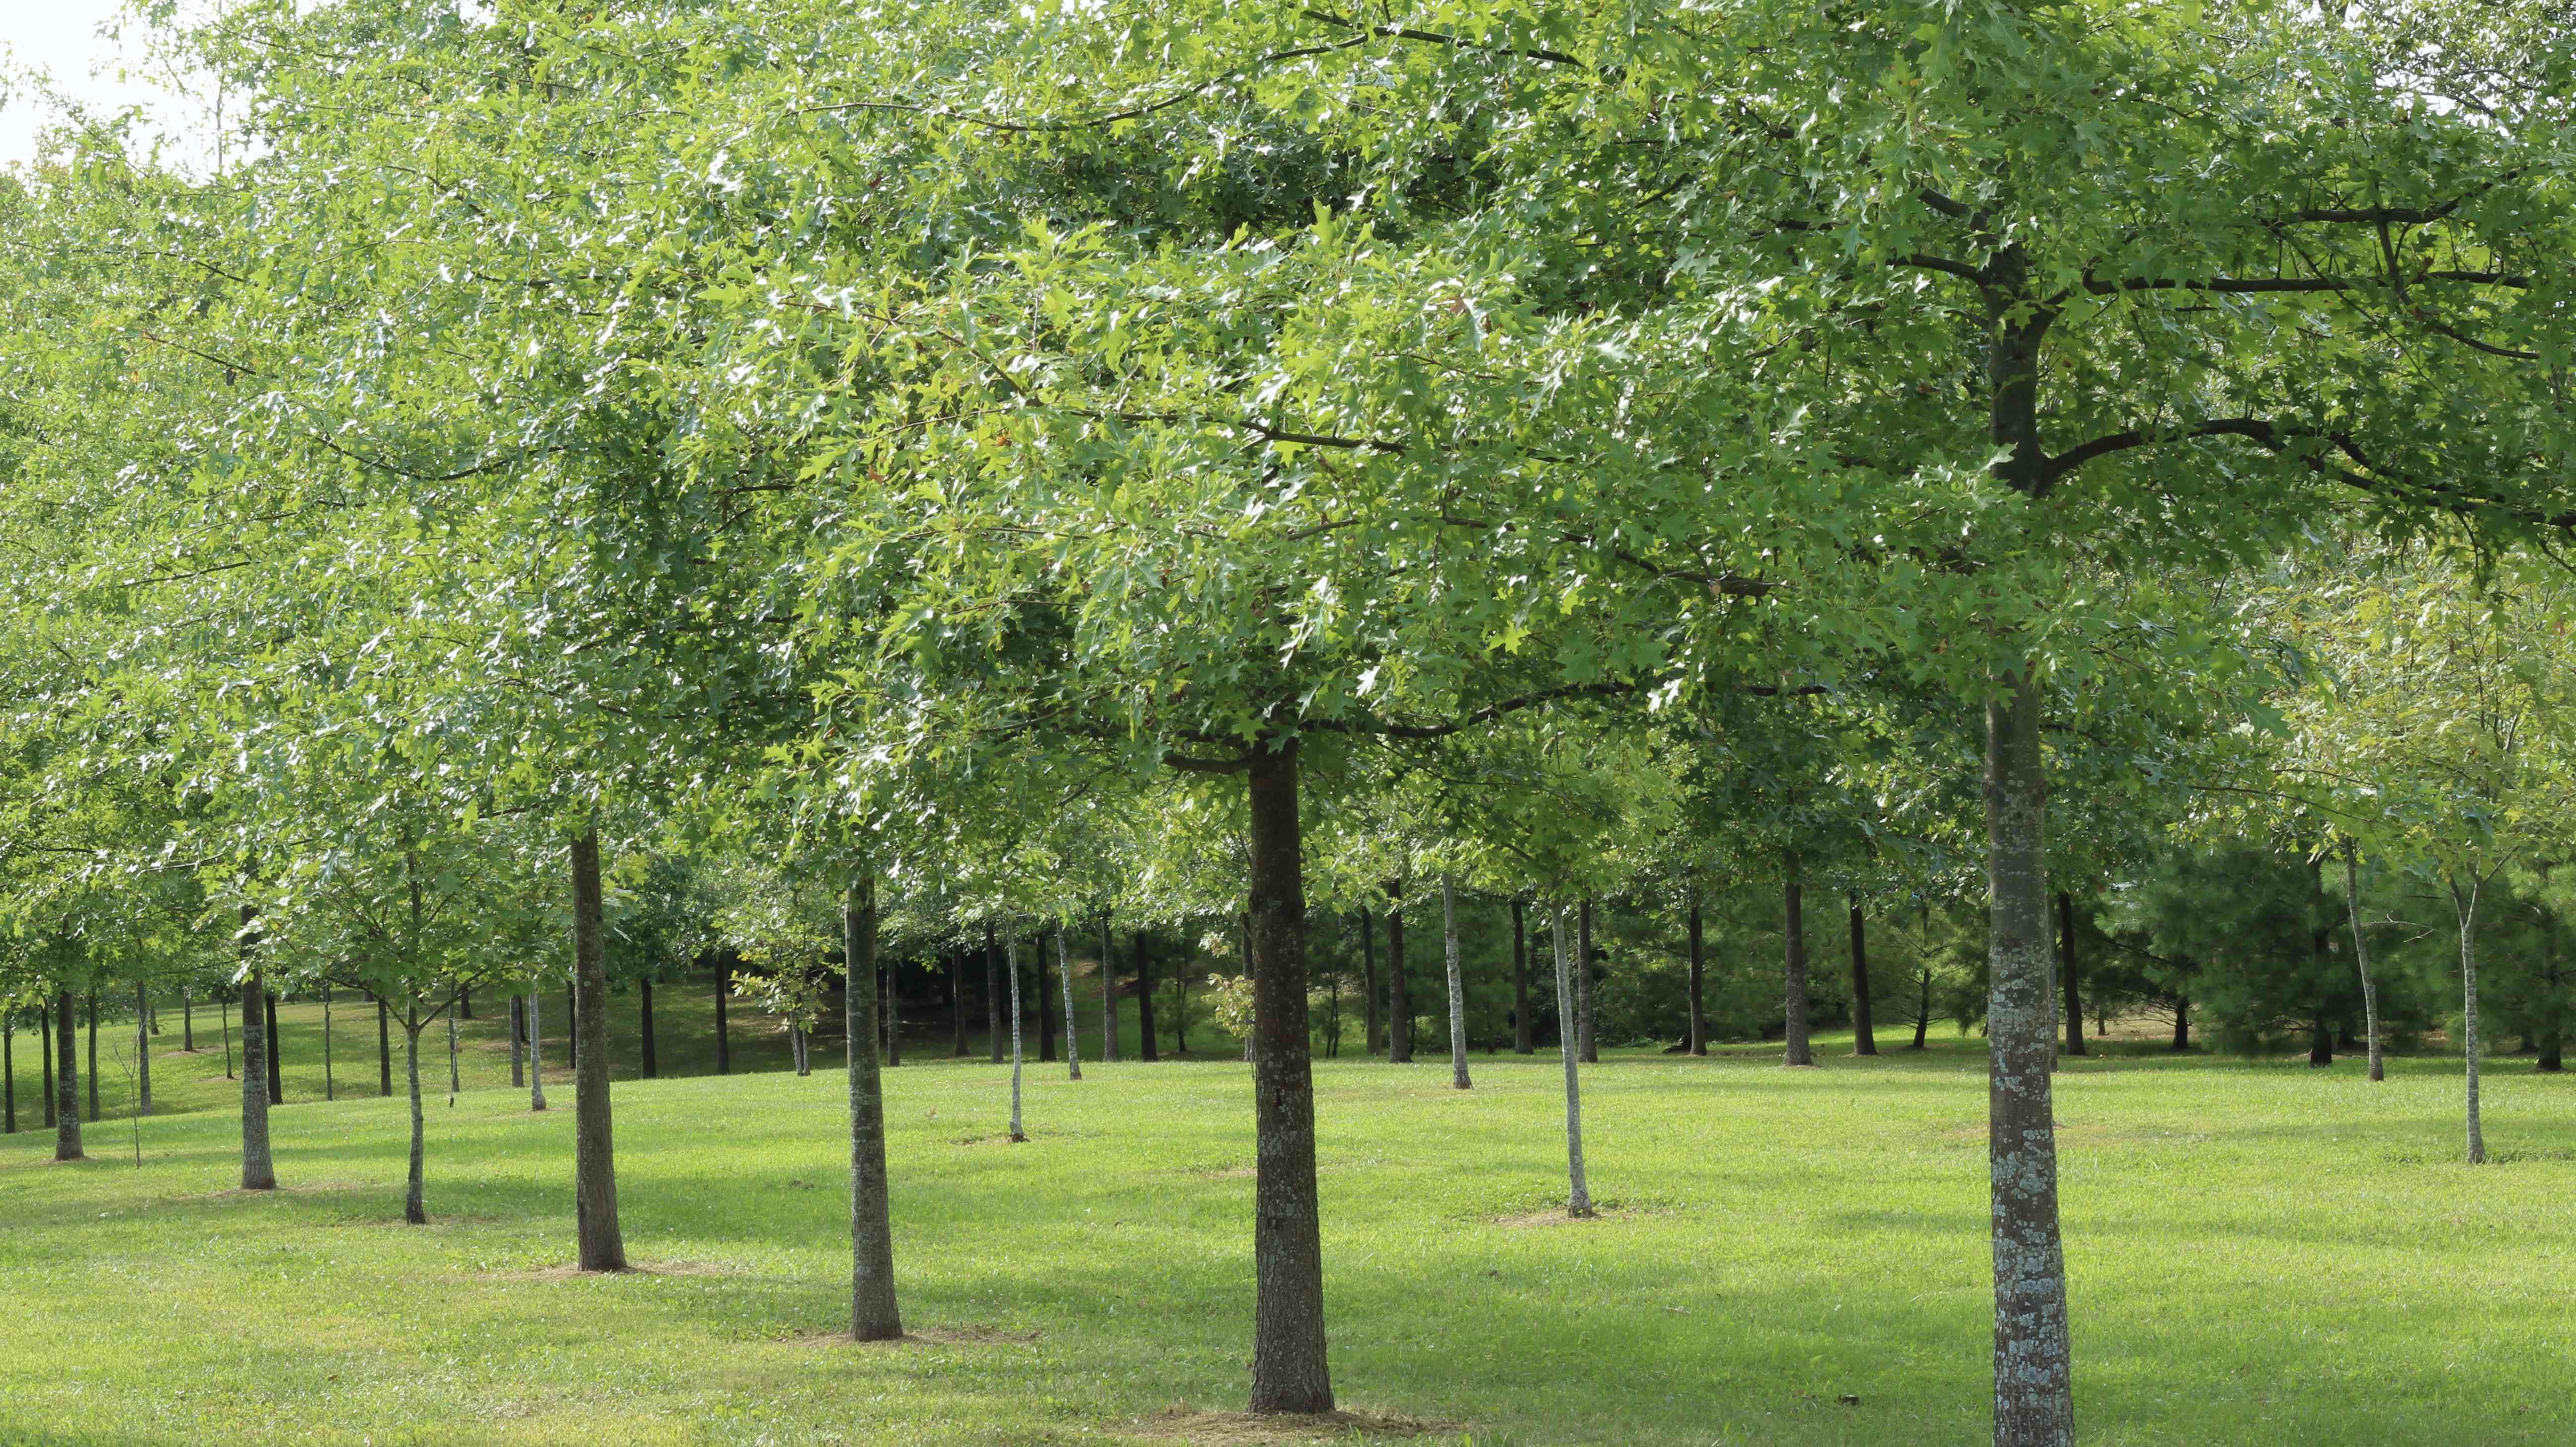 Pin Oak trees lined up in a row in a park.